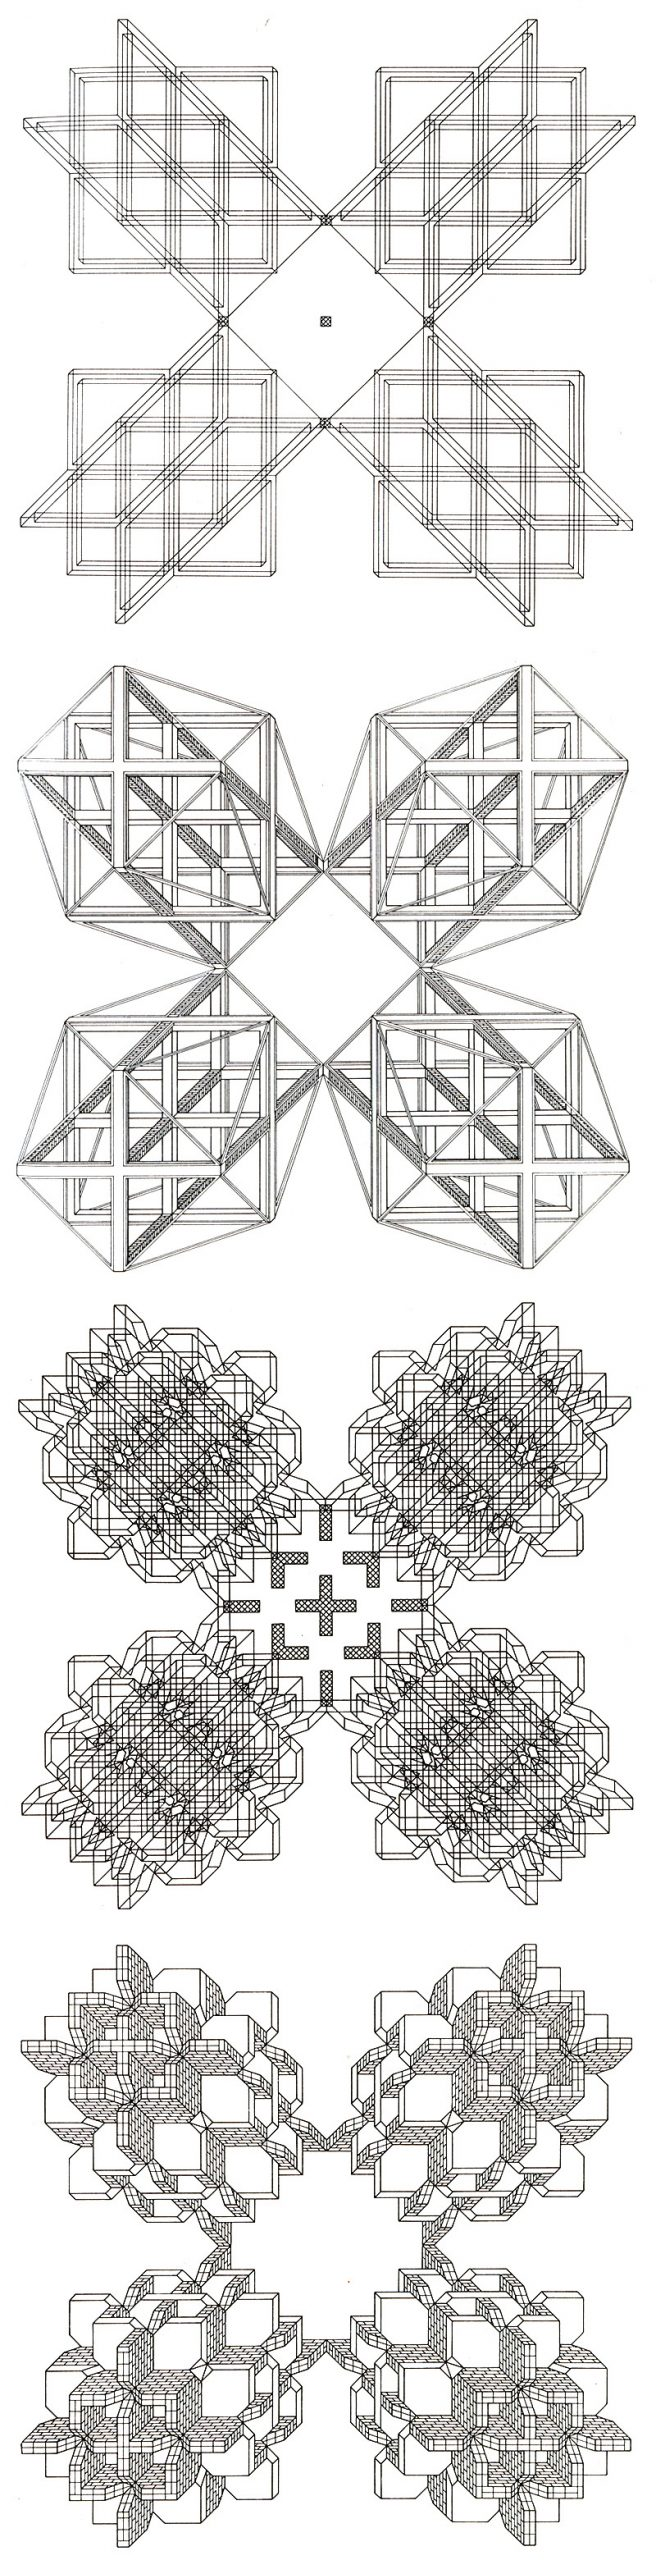 Stanley Tigerman and GL Crabtree Structures Lozenge 2